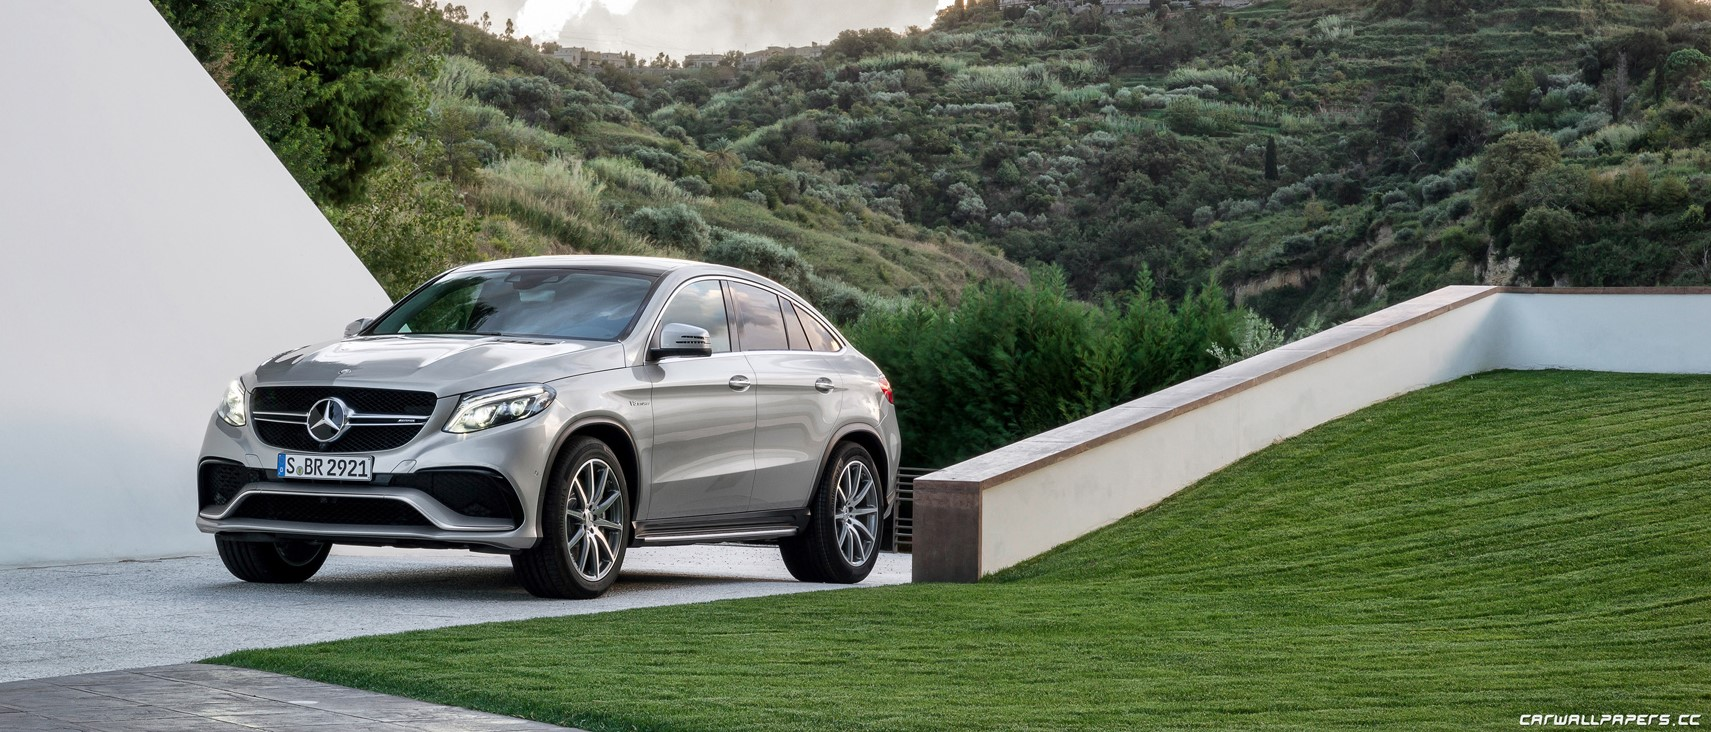 1 rated new car lease experts in orange county california for Mercedes benz lease specials orange county